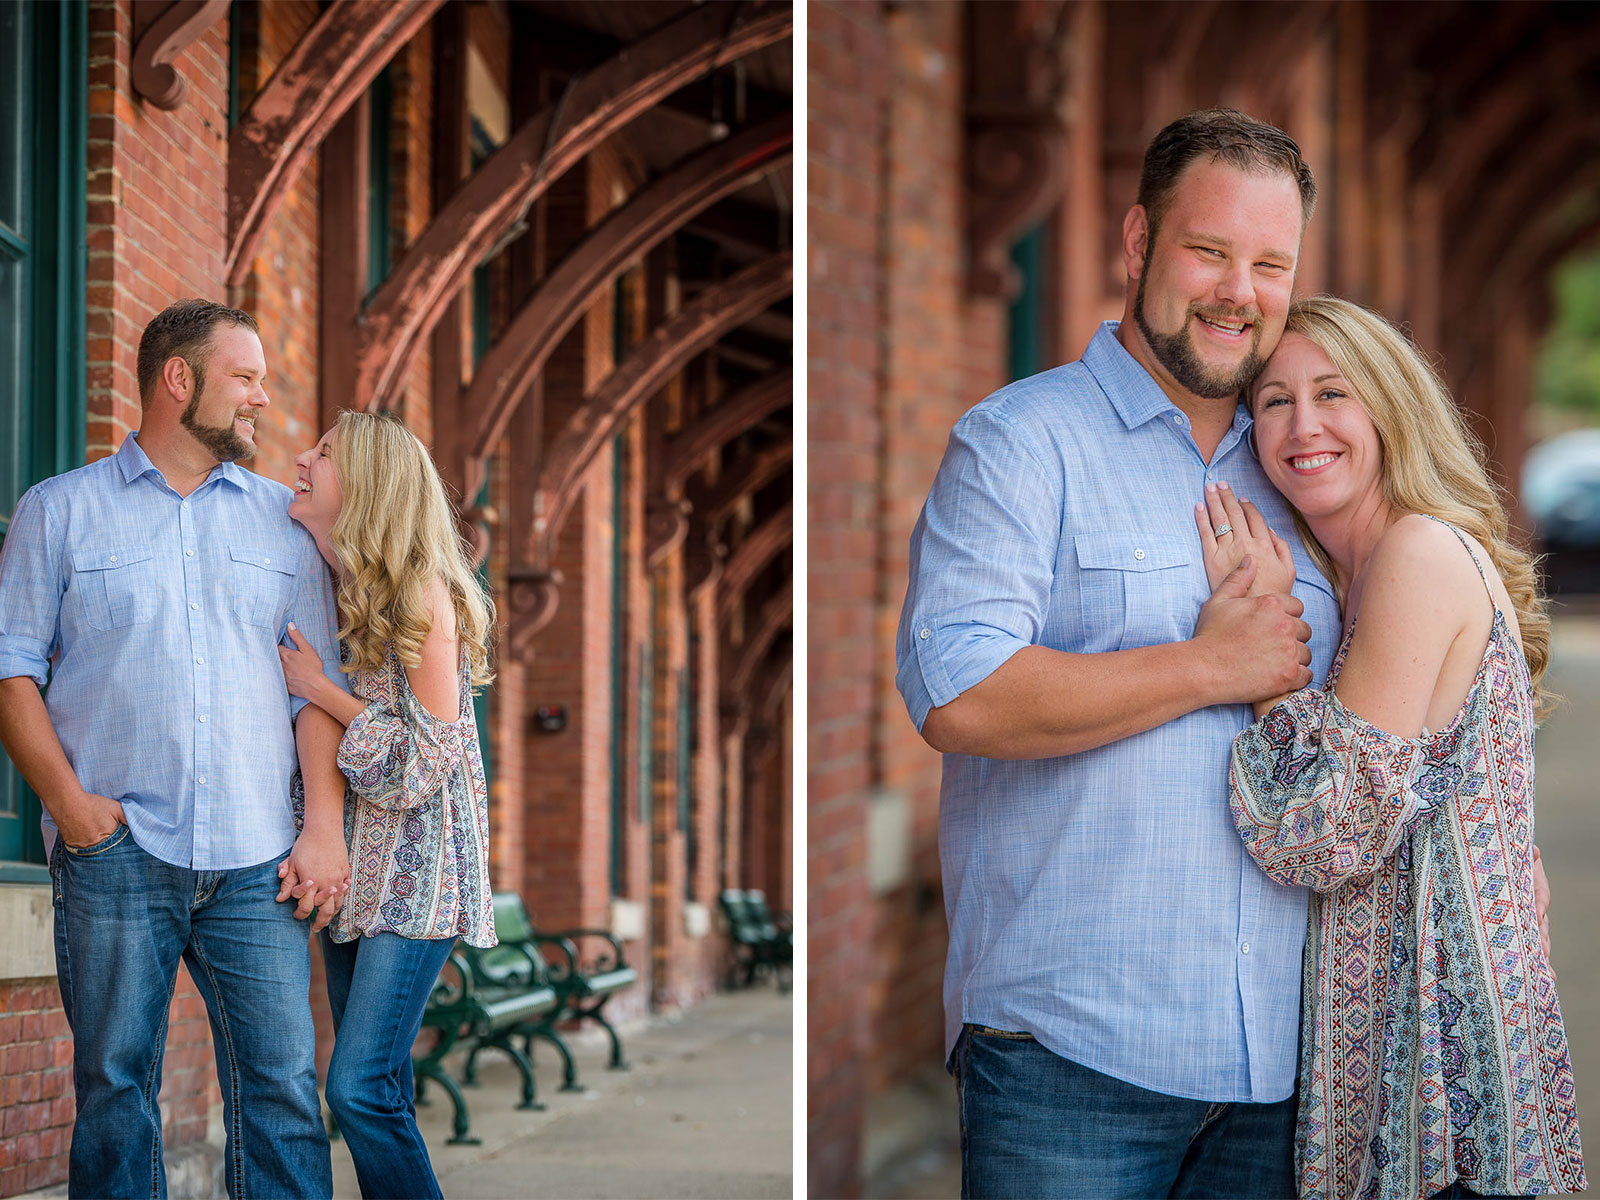 Eric_and_Christy_Photography_Blog_Kelly_Matt_Engagement-2-3